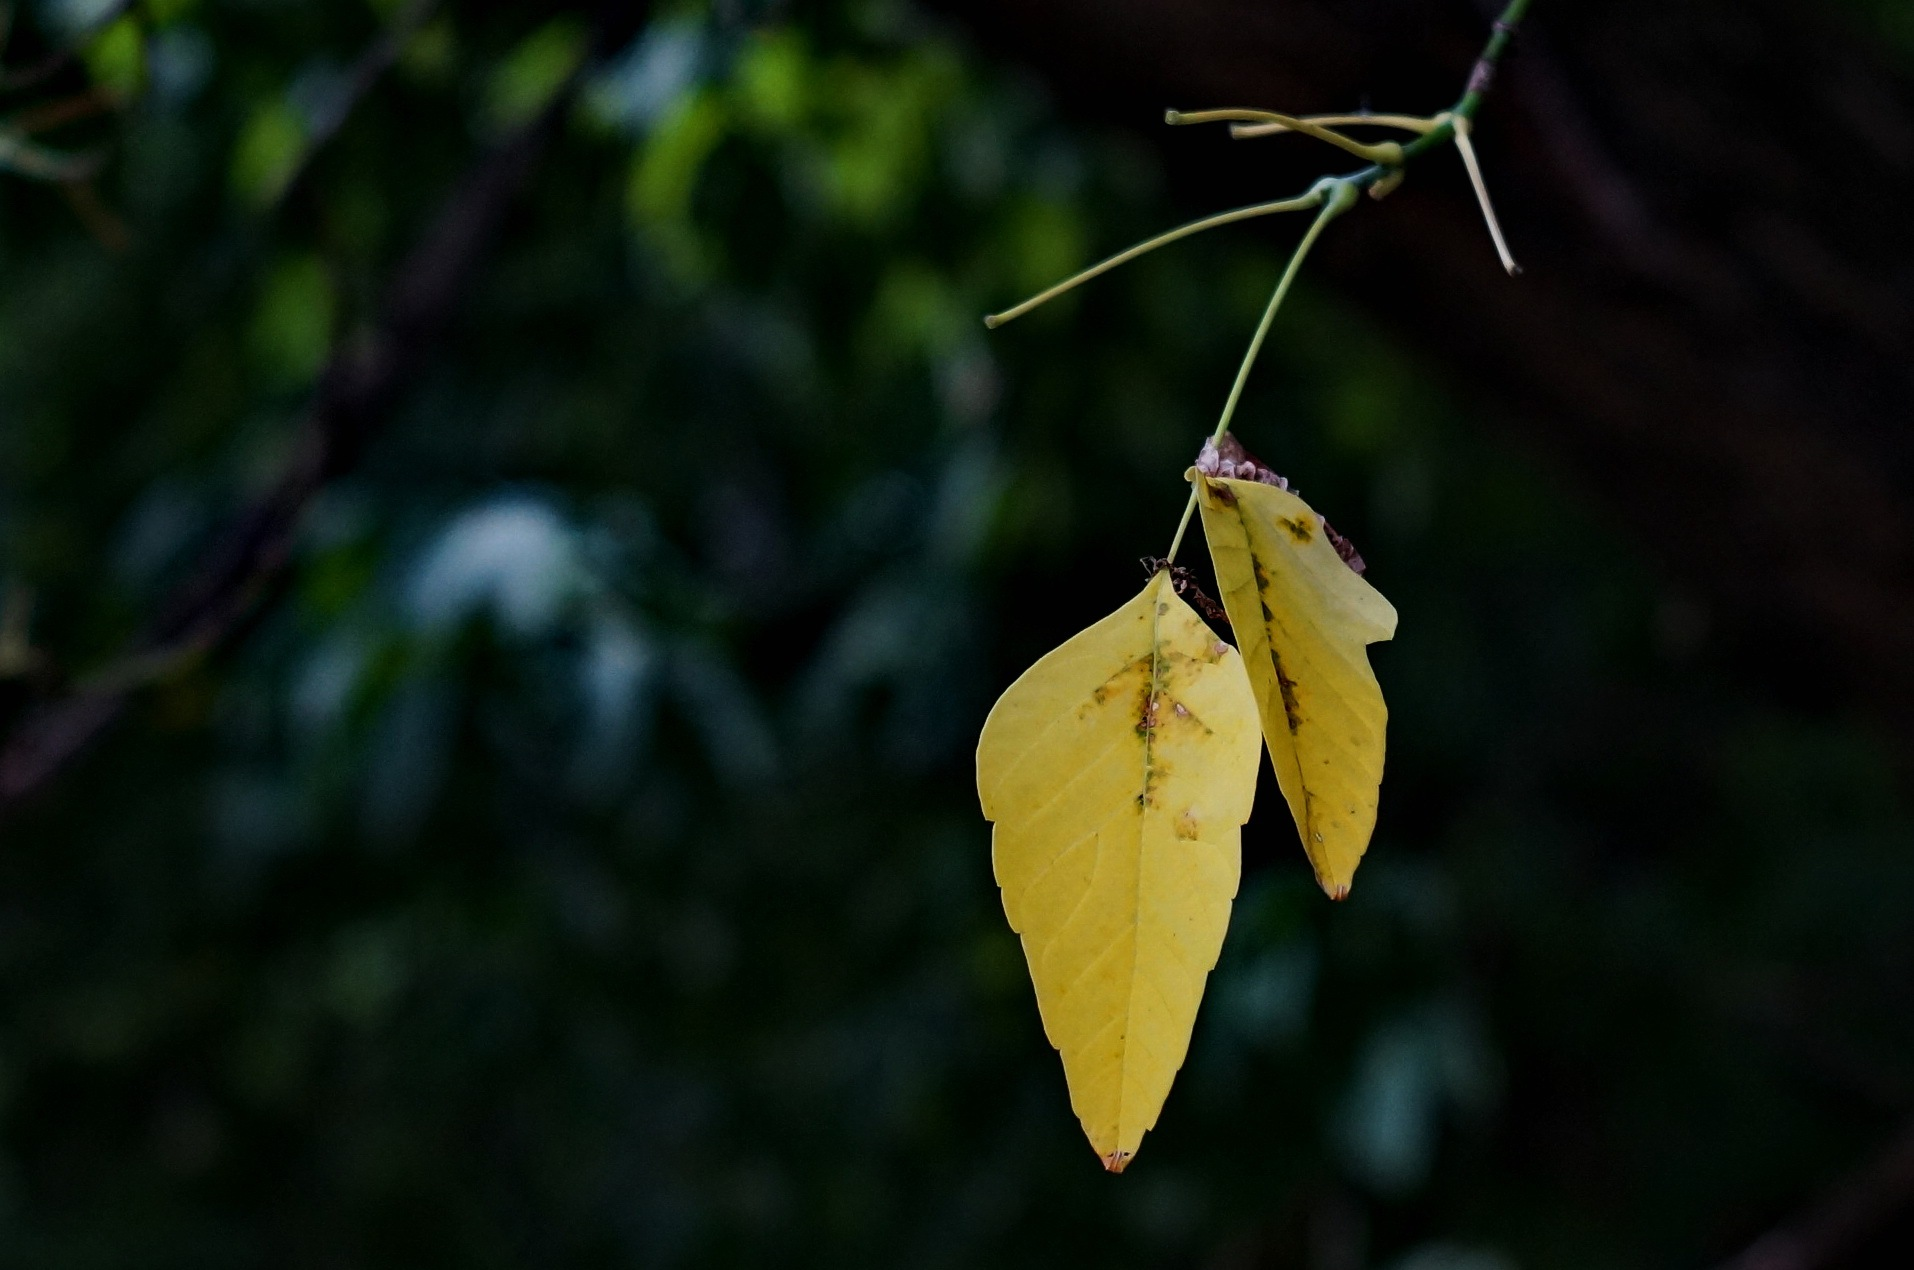 Yellow Ticket of Autumn by Yurkoff Wladimir